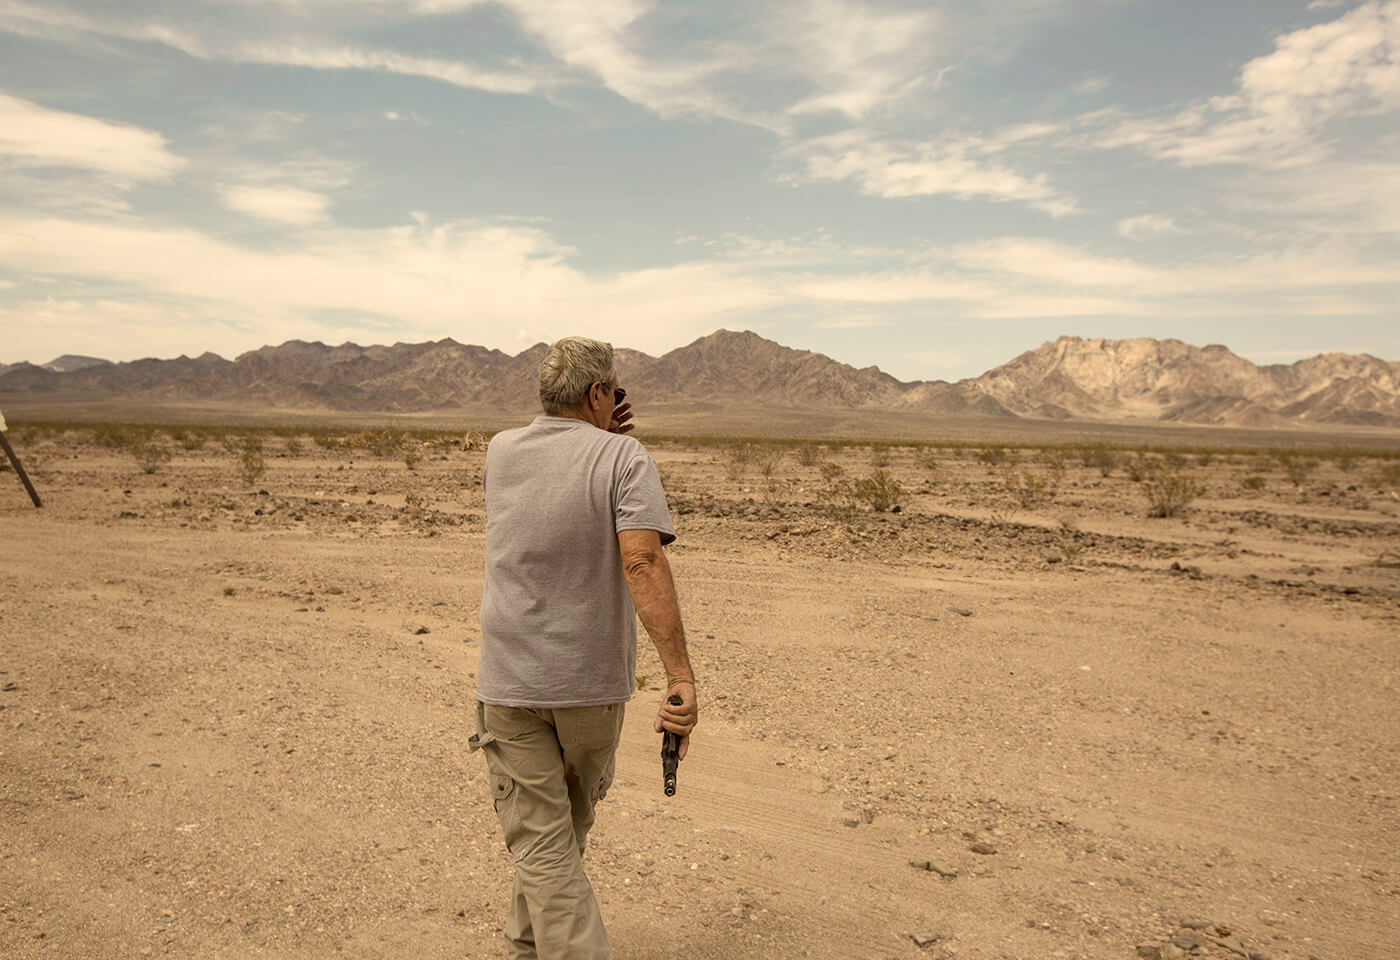 Image of man in desert with a handgun by Juliet Taylor